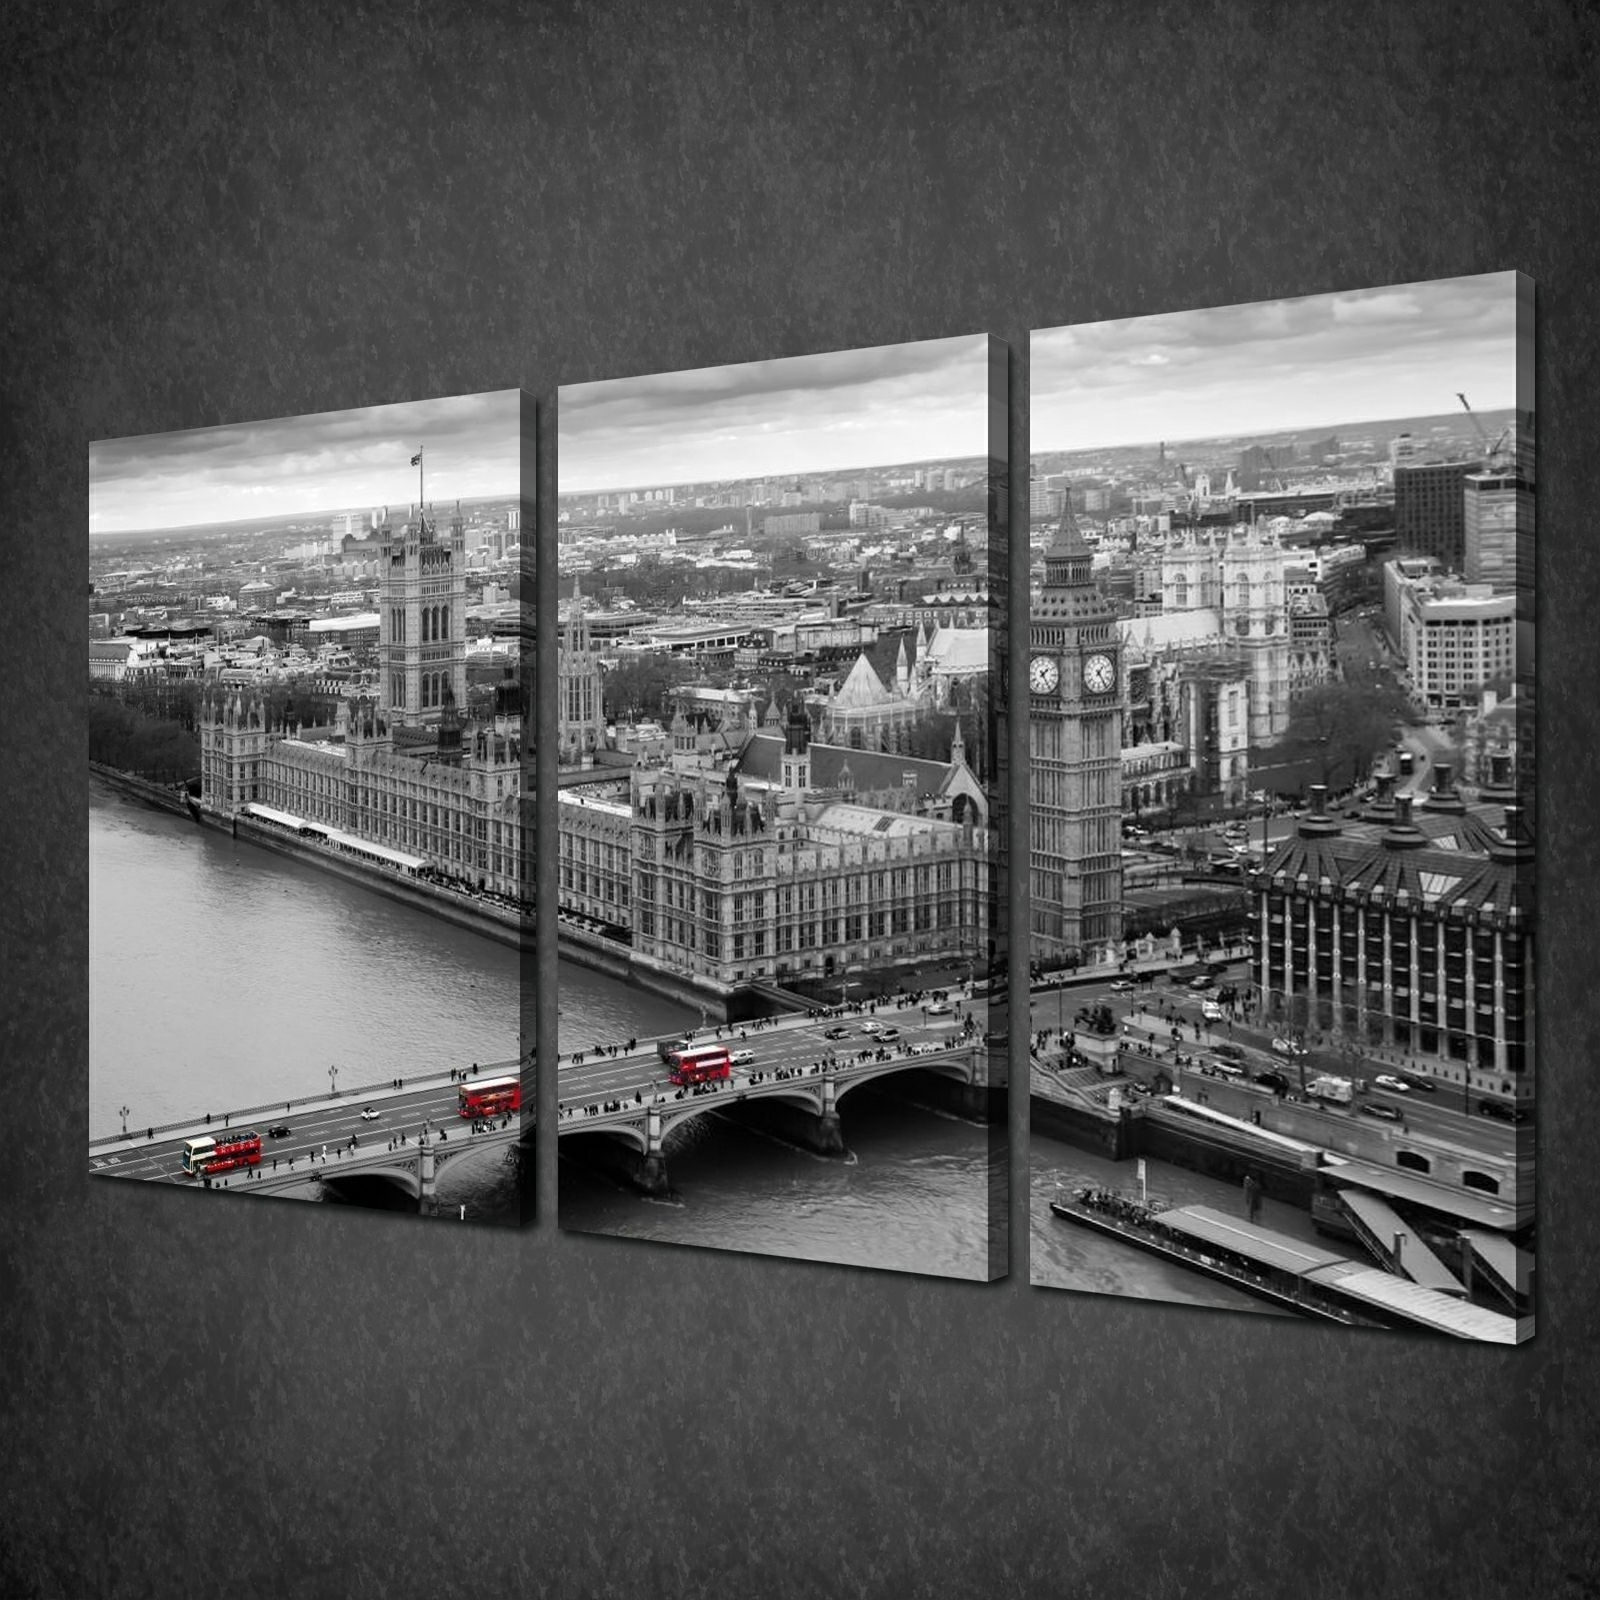 London Wall Art Unique Wall Art London – Wall Decoration Ideas With Most Popular London Wall Art (View 13 of 20)